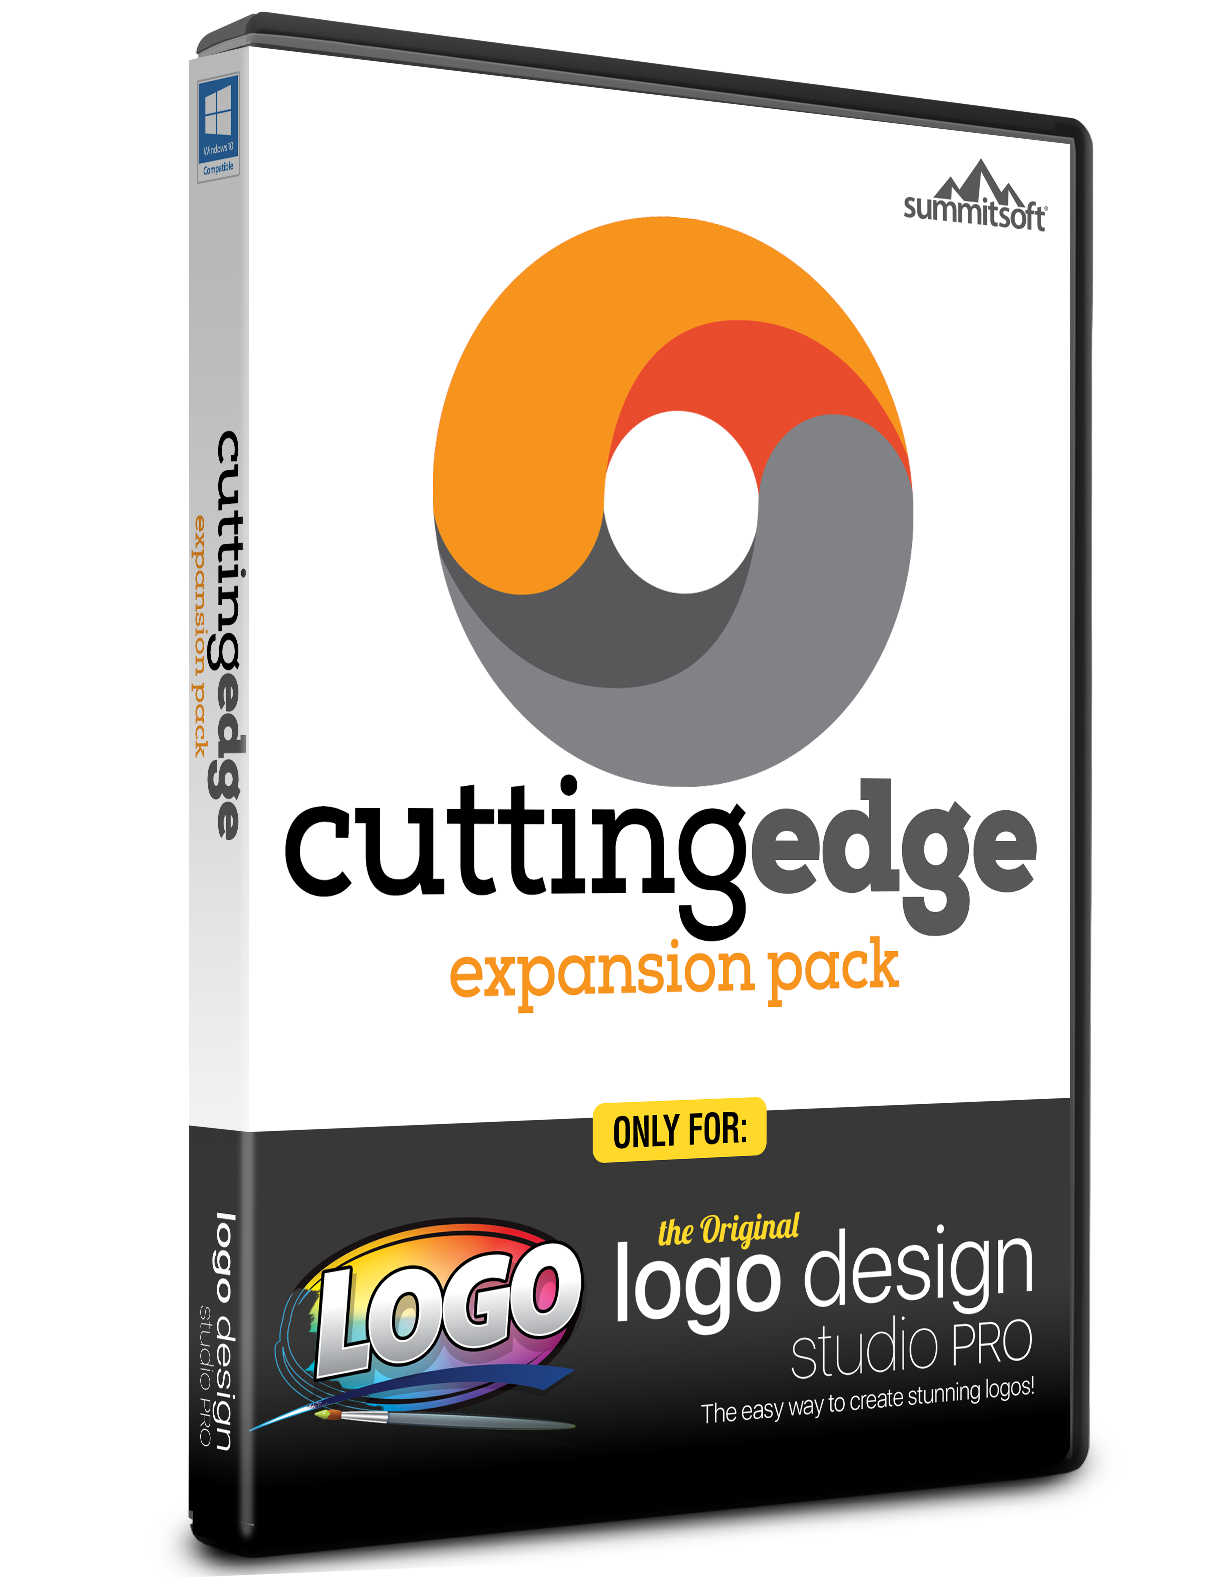 Cutting Edge Premium Content Pack 1 Selling Logo Software For Over 15 Years Summitsoft